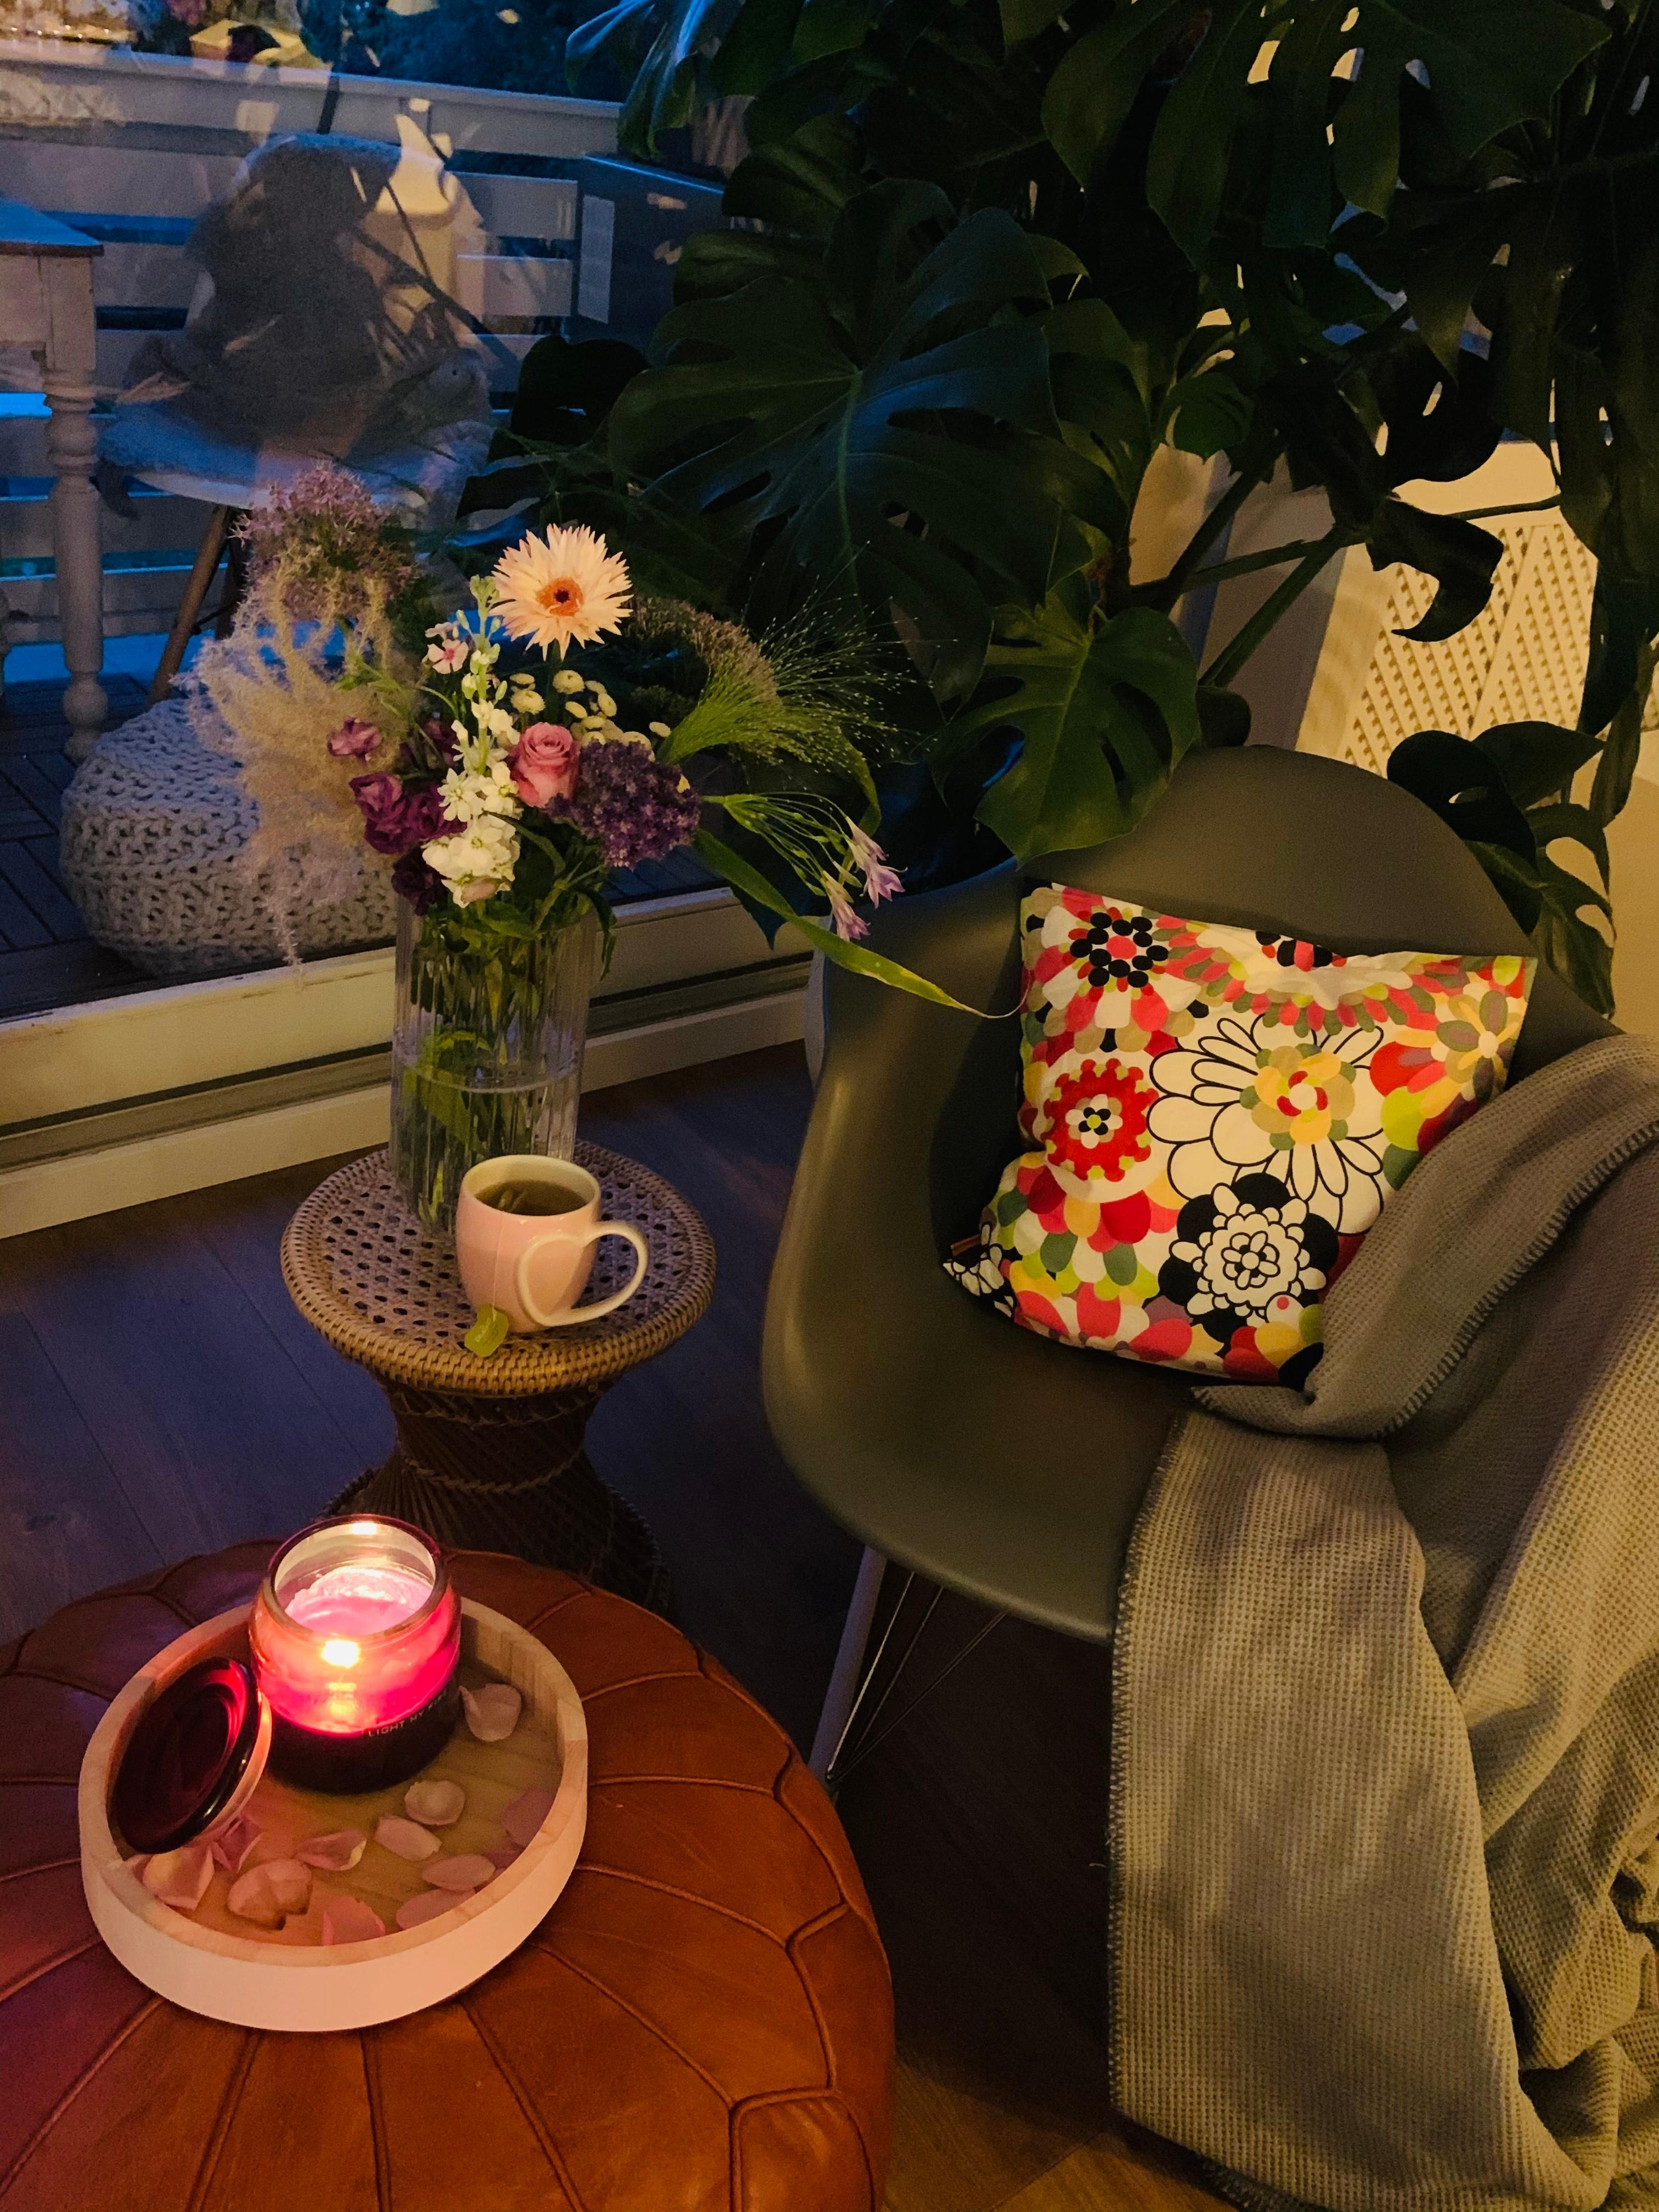 Have a happy evening boys and girls!